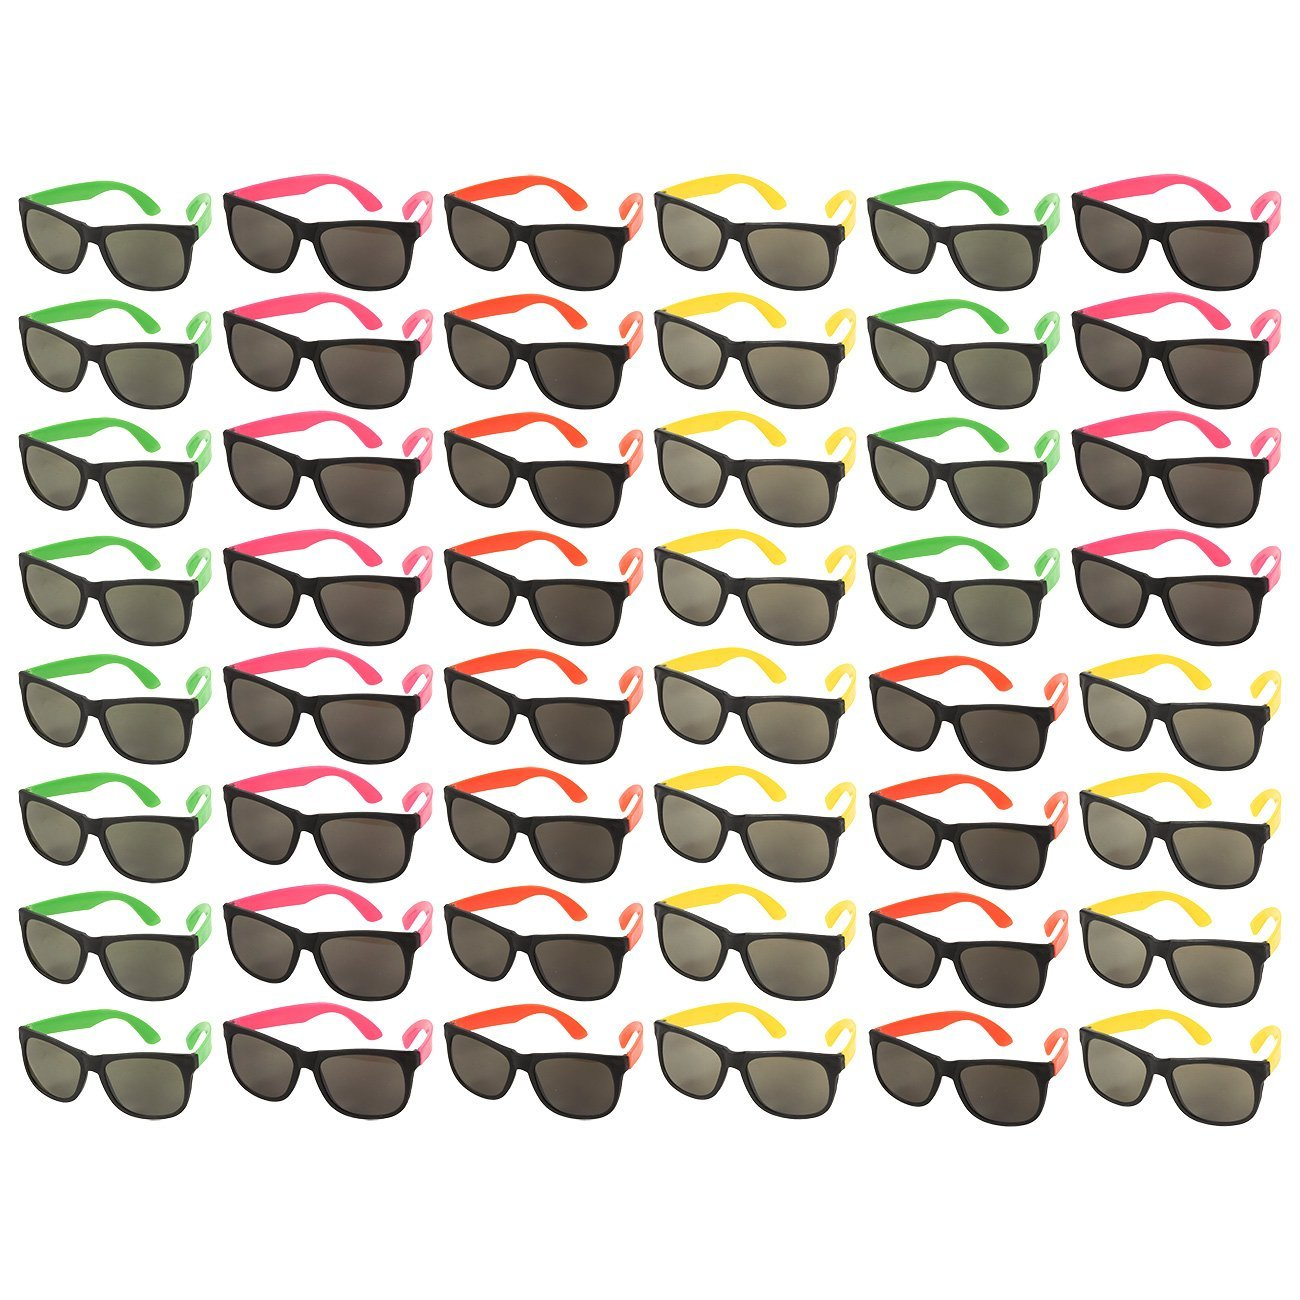 c20905ca619 Get Quotations · 48-Pack Party Glasses - 80s Party Favors